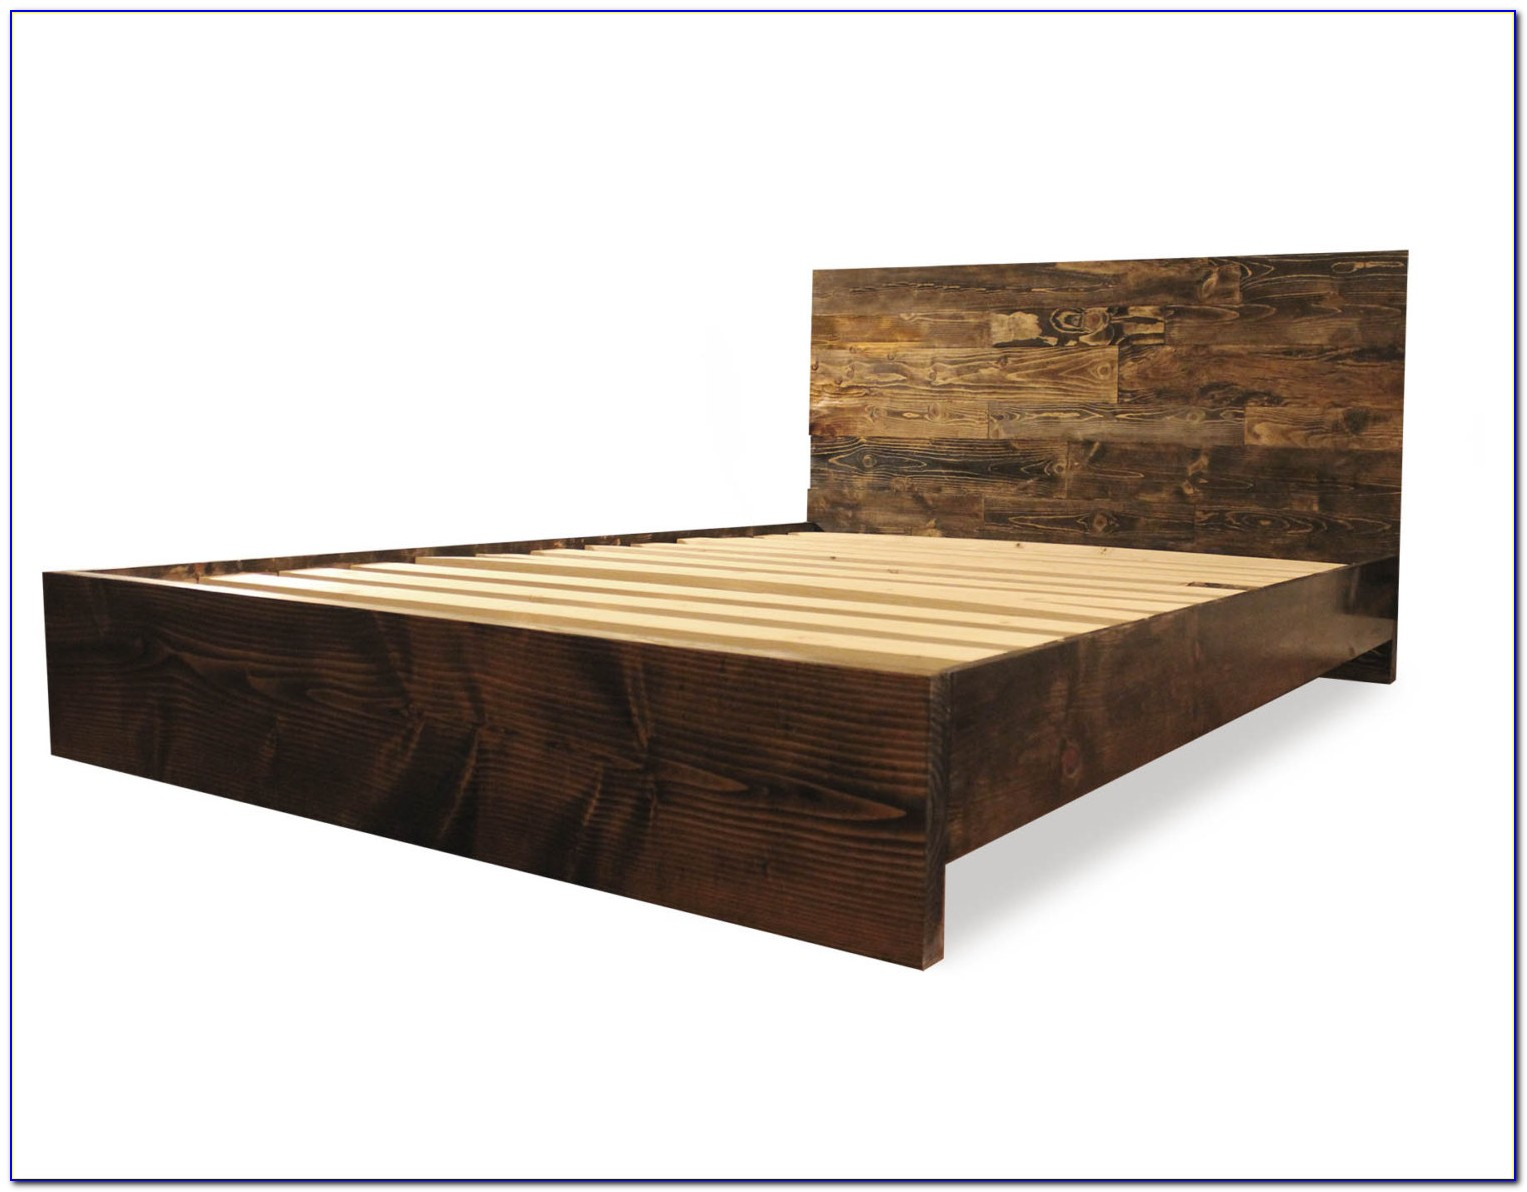 Wooden Bed Frame And Headboard